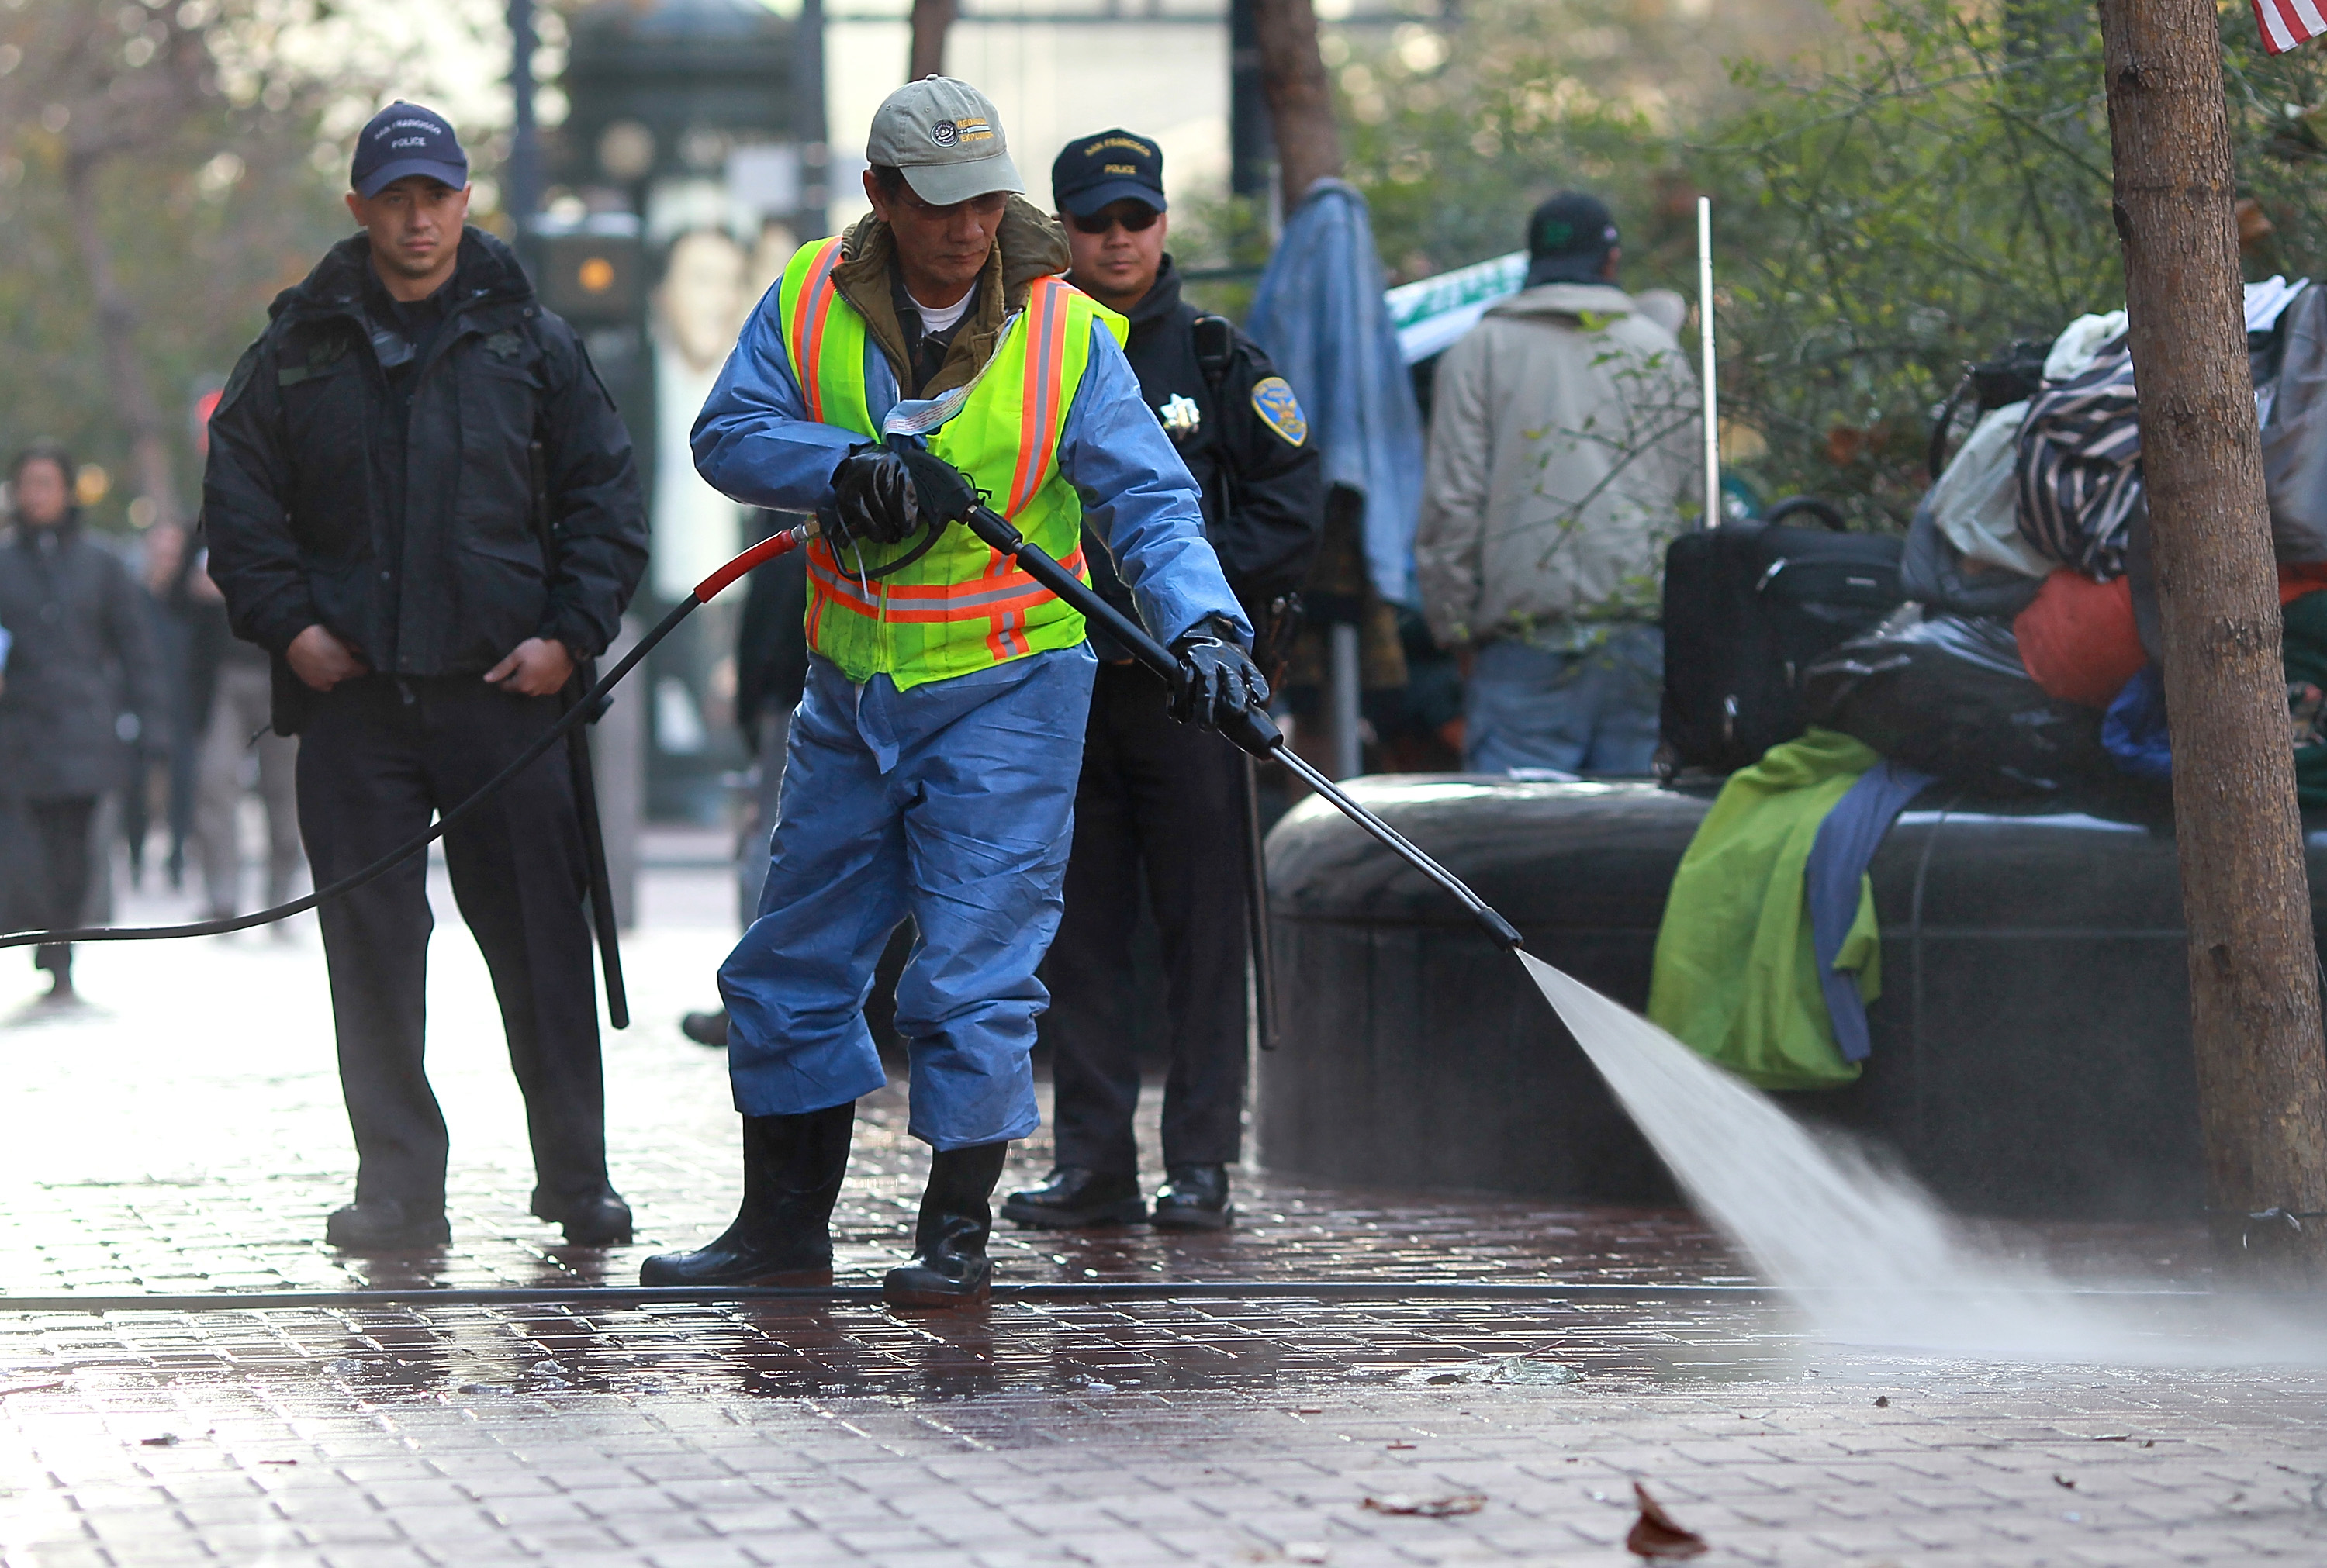 San Francisco police officers look on as a San Francisco Department of Public Works worker steam cleans the street on Dec. 8, 2011 in San Francisco, California.